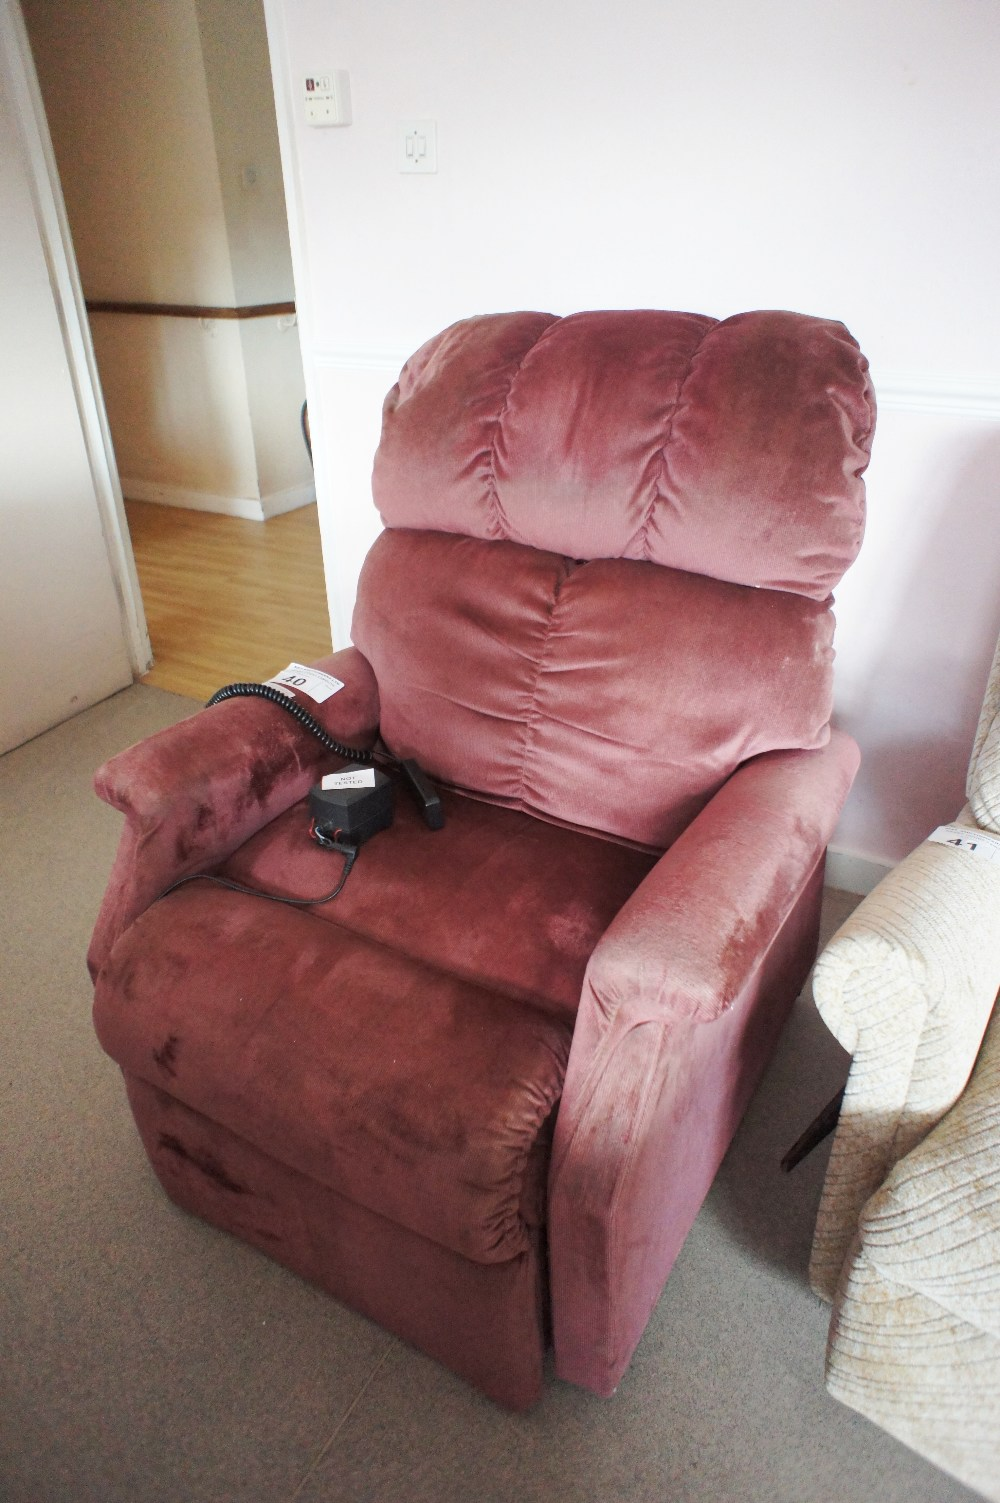 Lot 40 - 1 electrically operated recliner chair in maroon upholstery (requires attention) (located in room